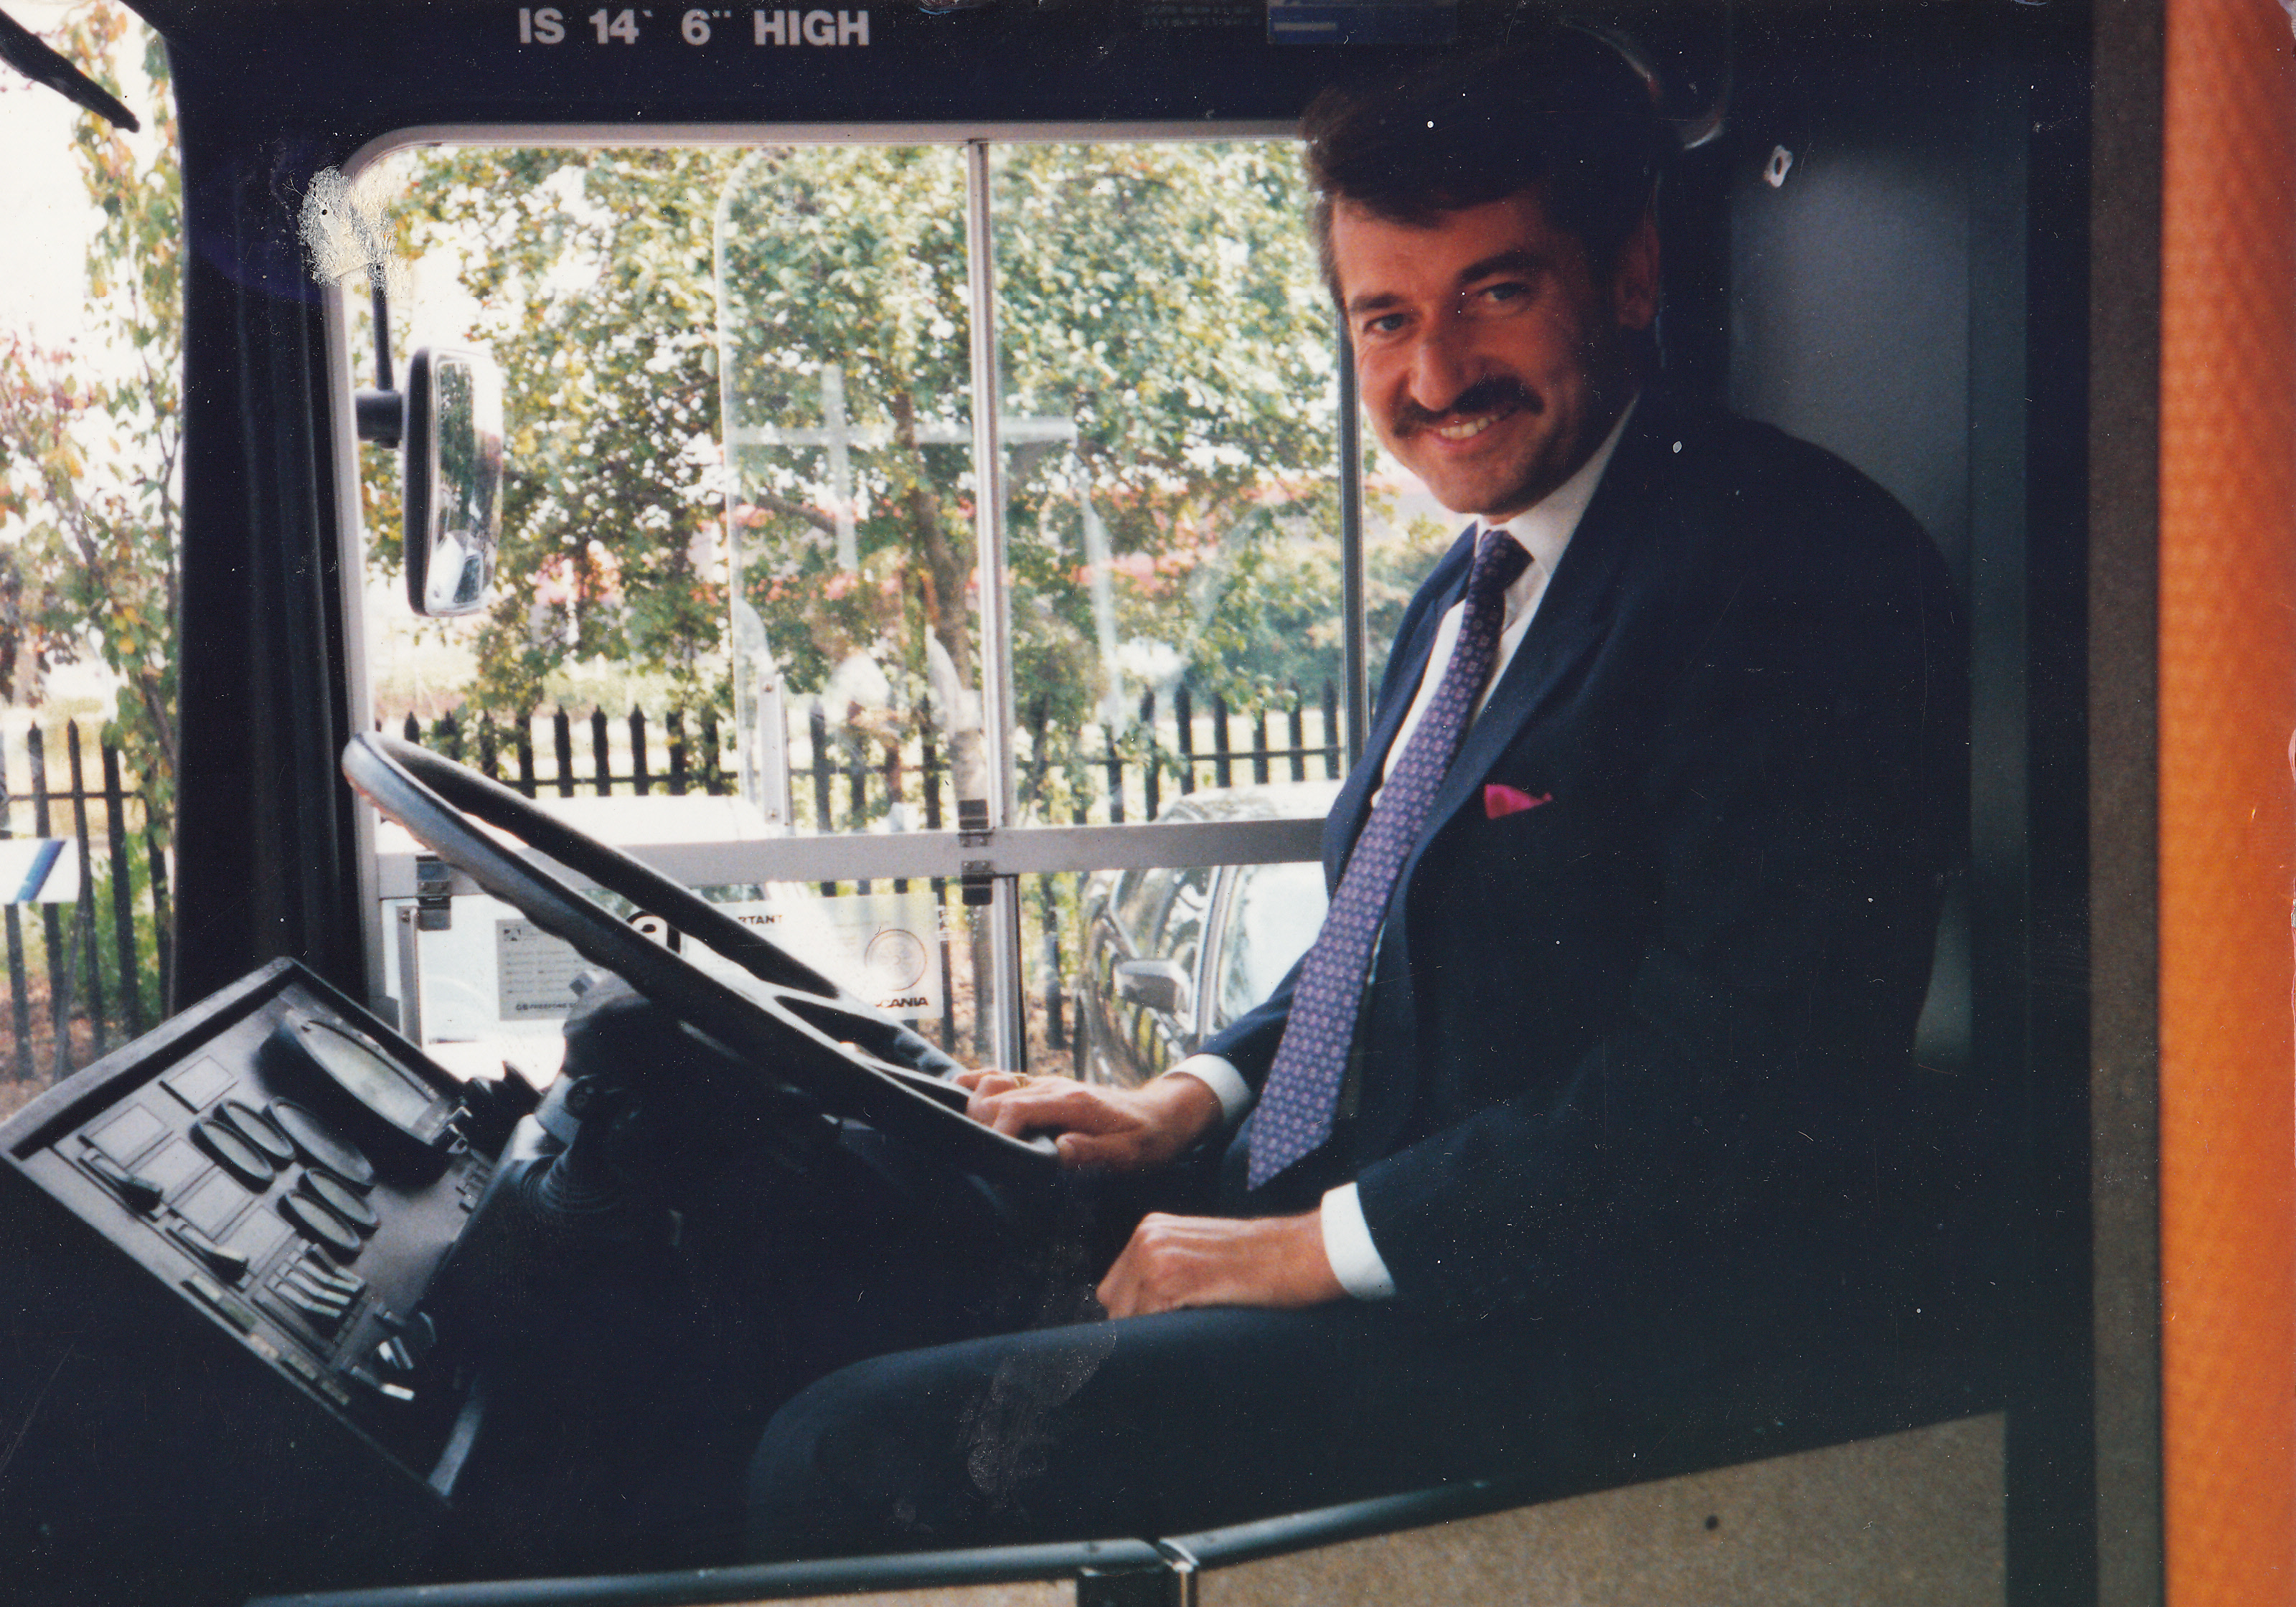 Chris Kelly, Keltruck's founder (then Managing Director & Dealer Principal) at the wheel.